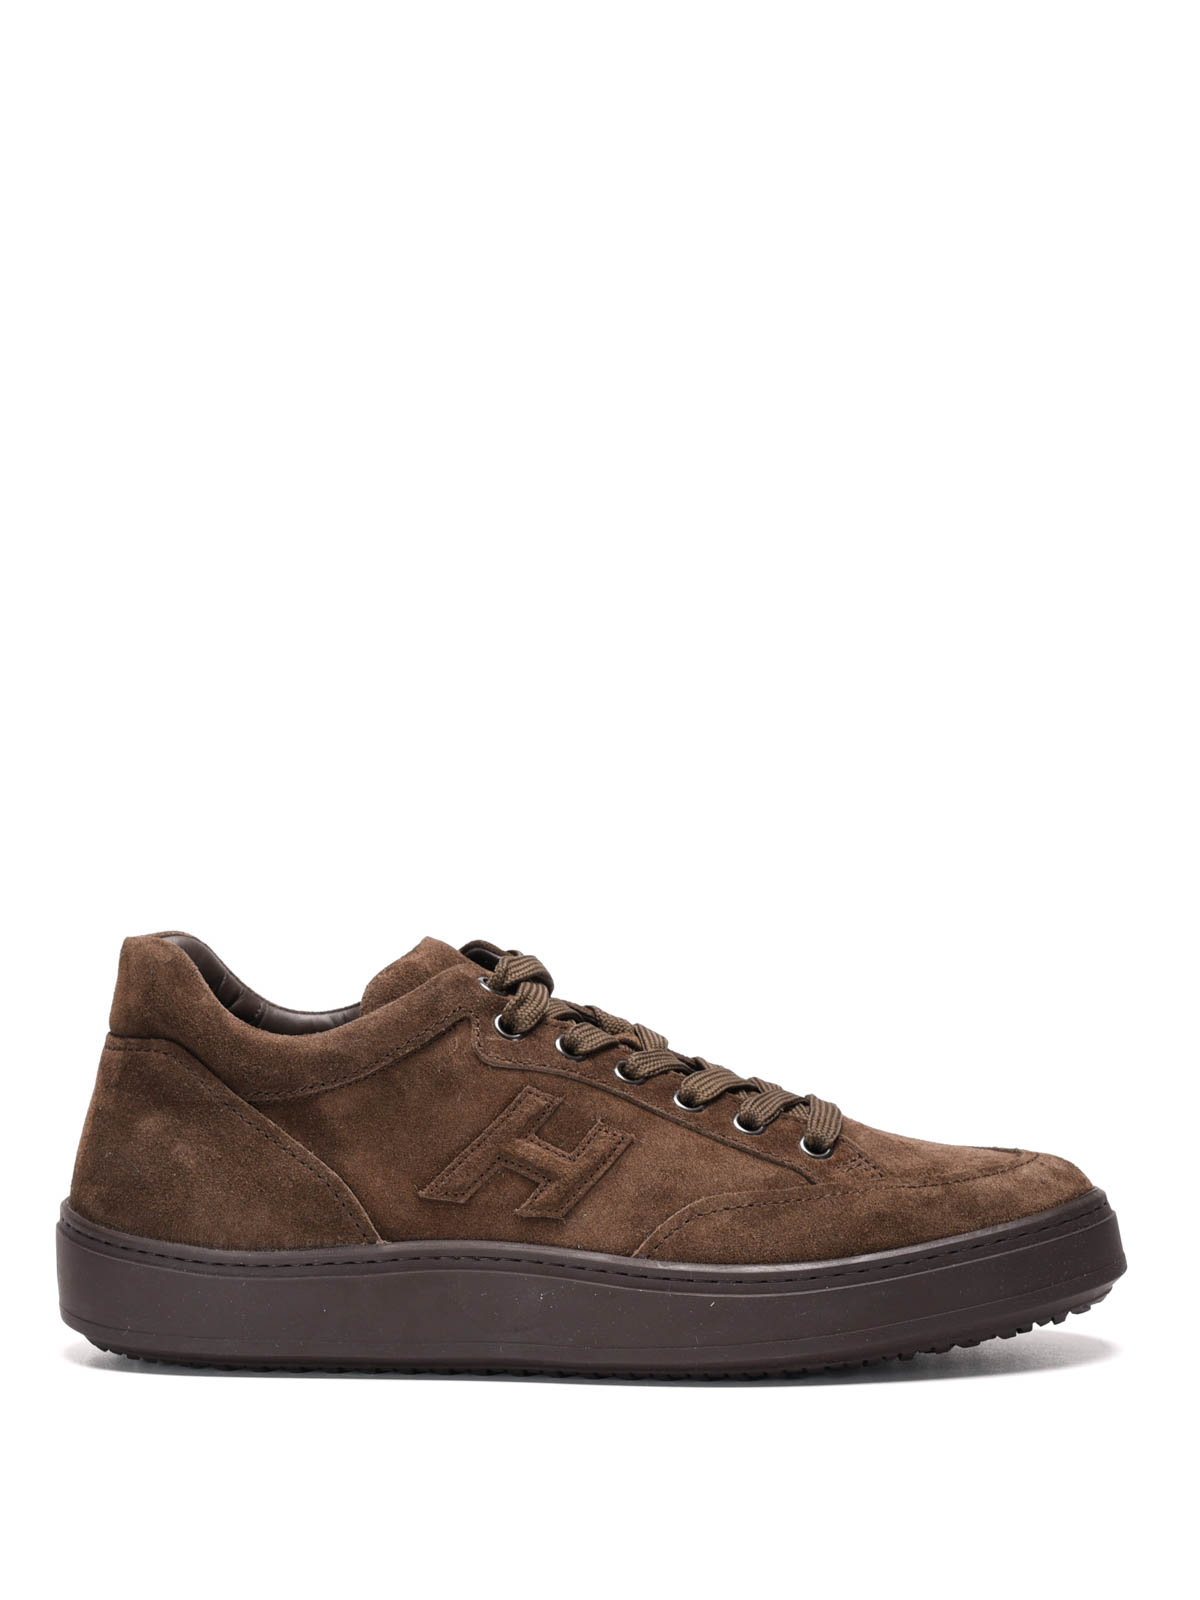 H302 low top suede urban sneakers by Hogan - trainers | Shop online at iKRIX.com ...